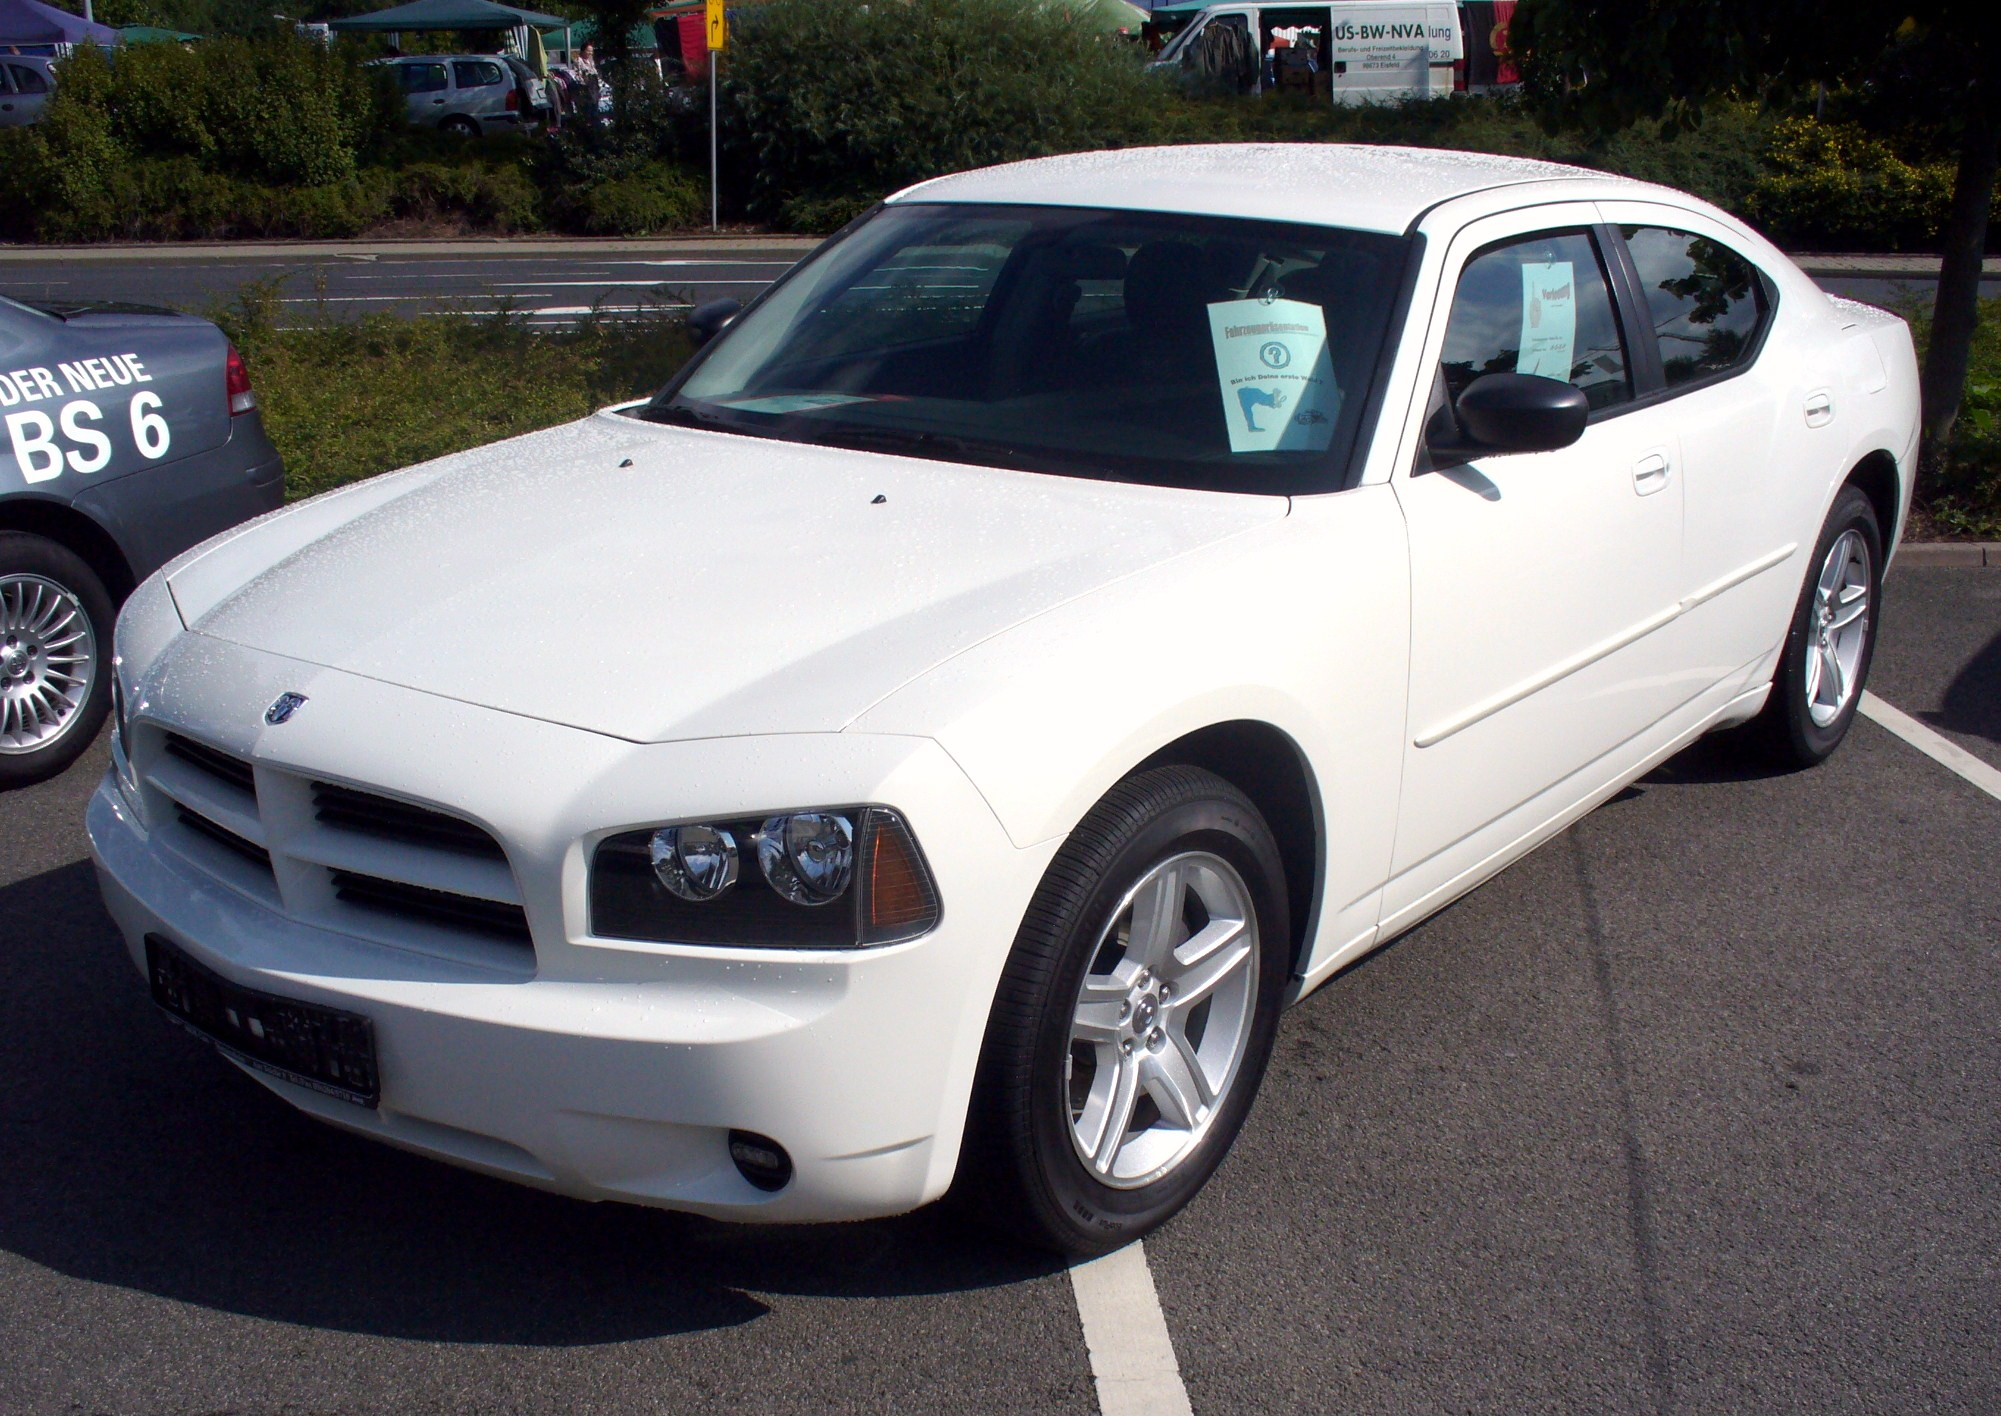 2008 dodge charger information and photos momentcar for 2008 dodge charger motor